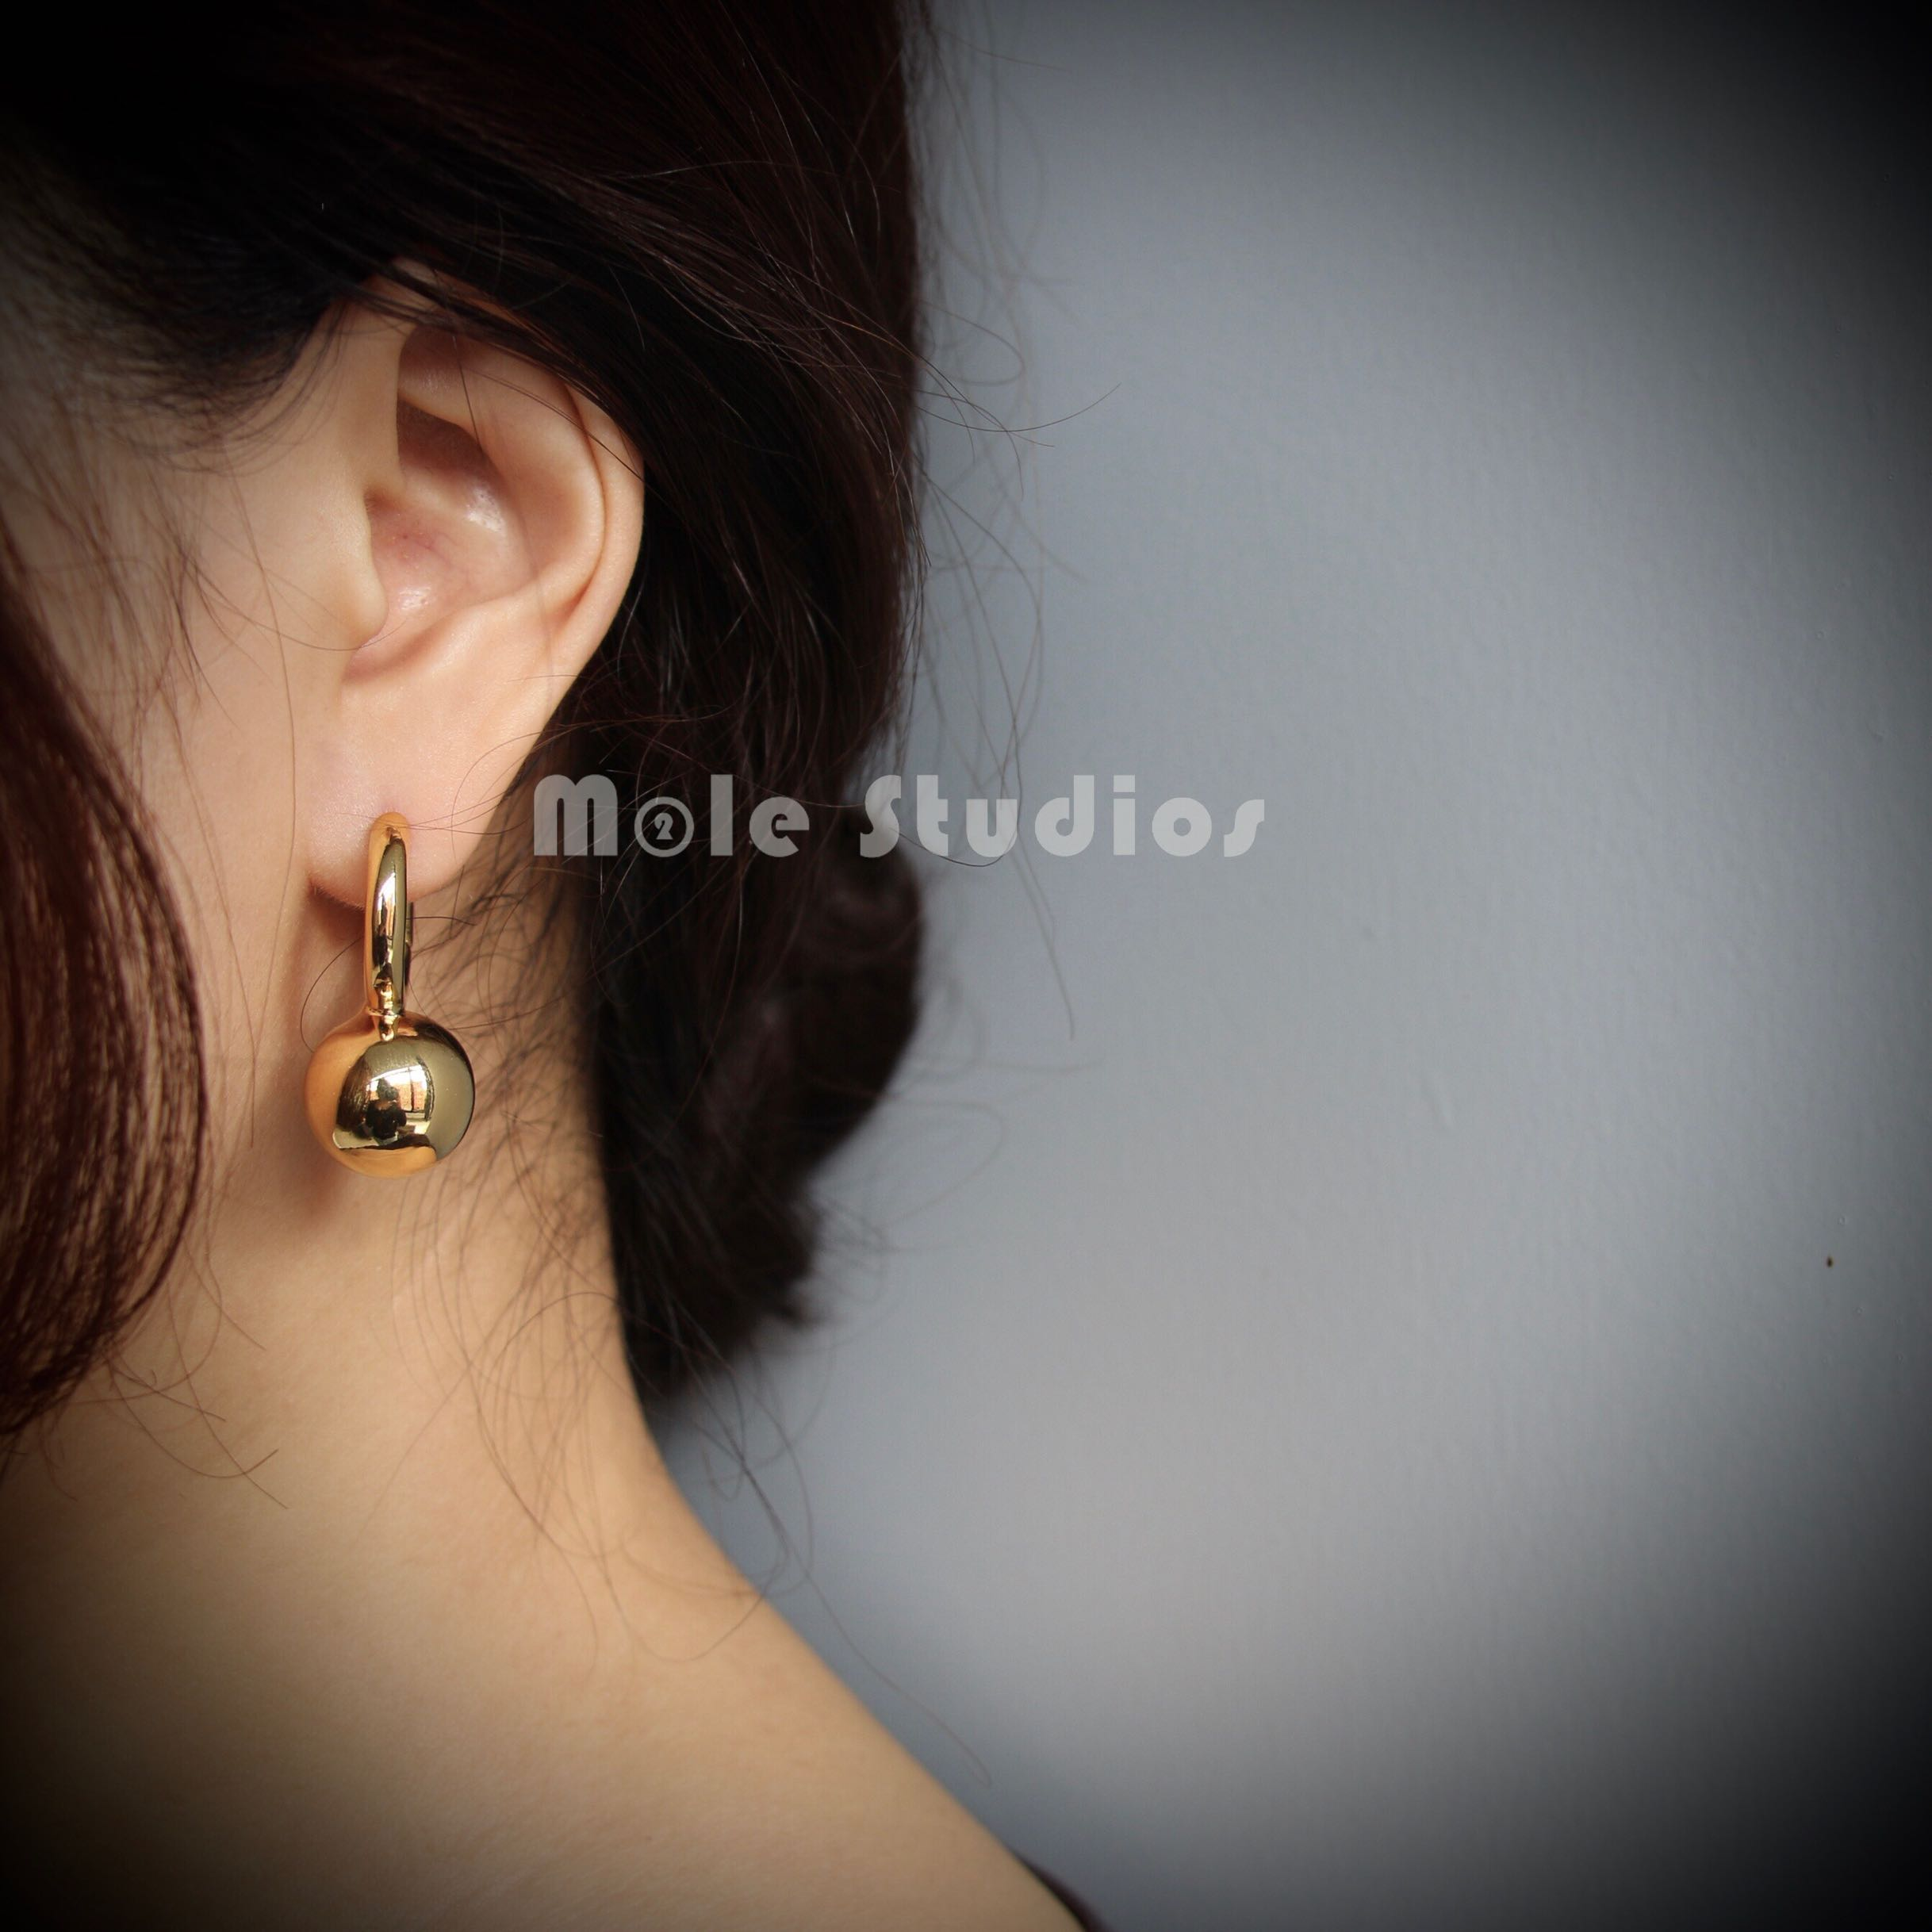 Mobile studios / INS bloggers same chic ring imitation pearl earrings copper plated gold earrings